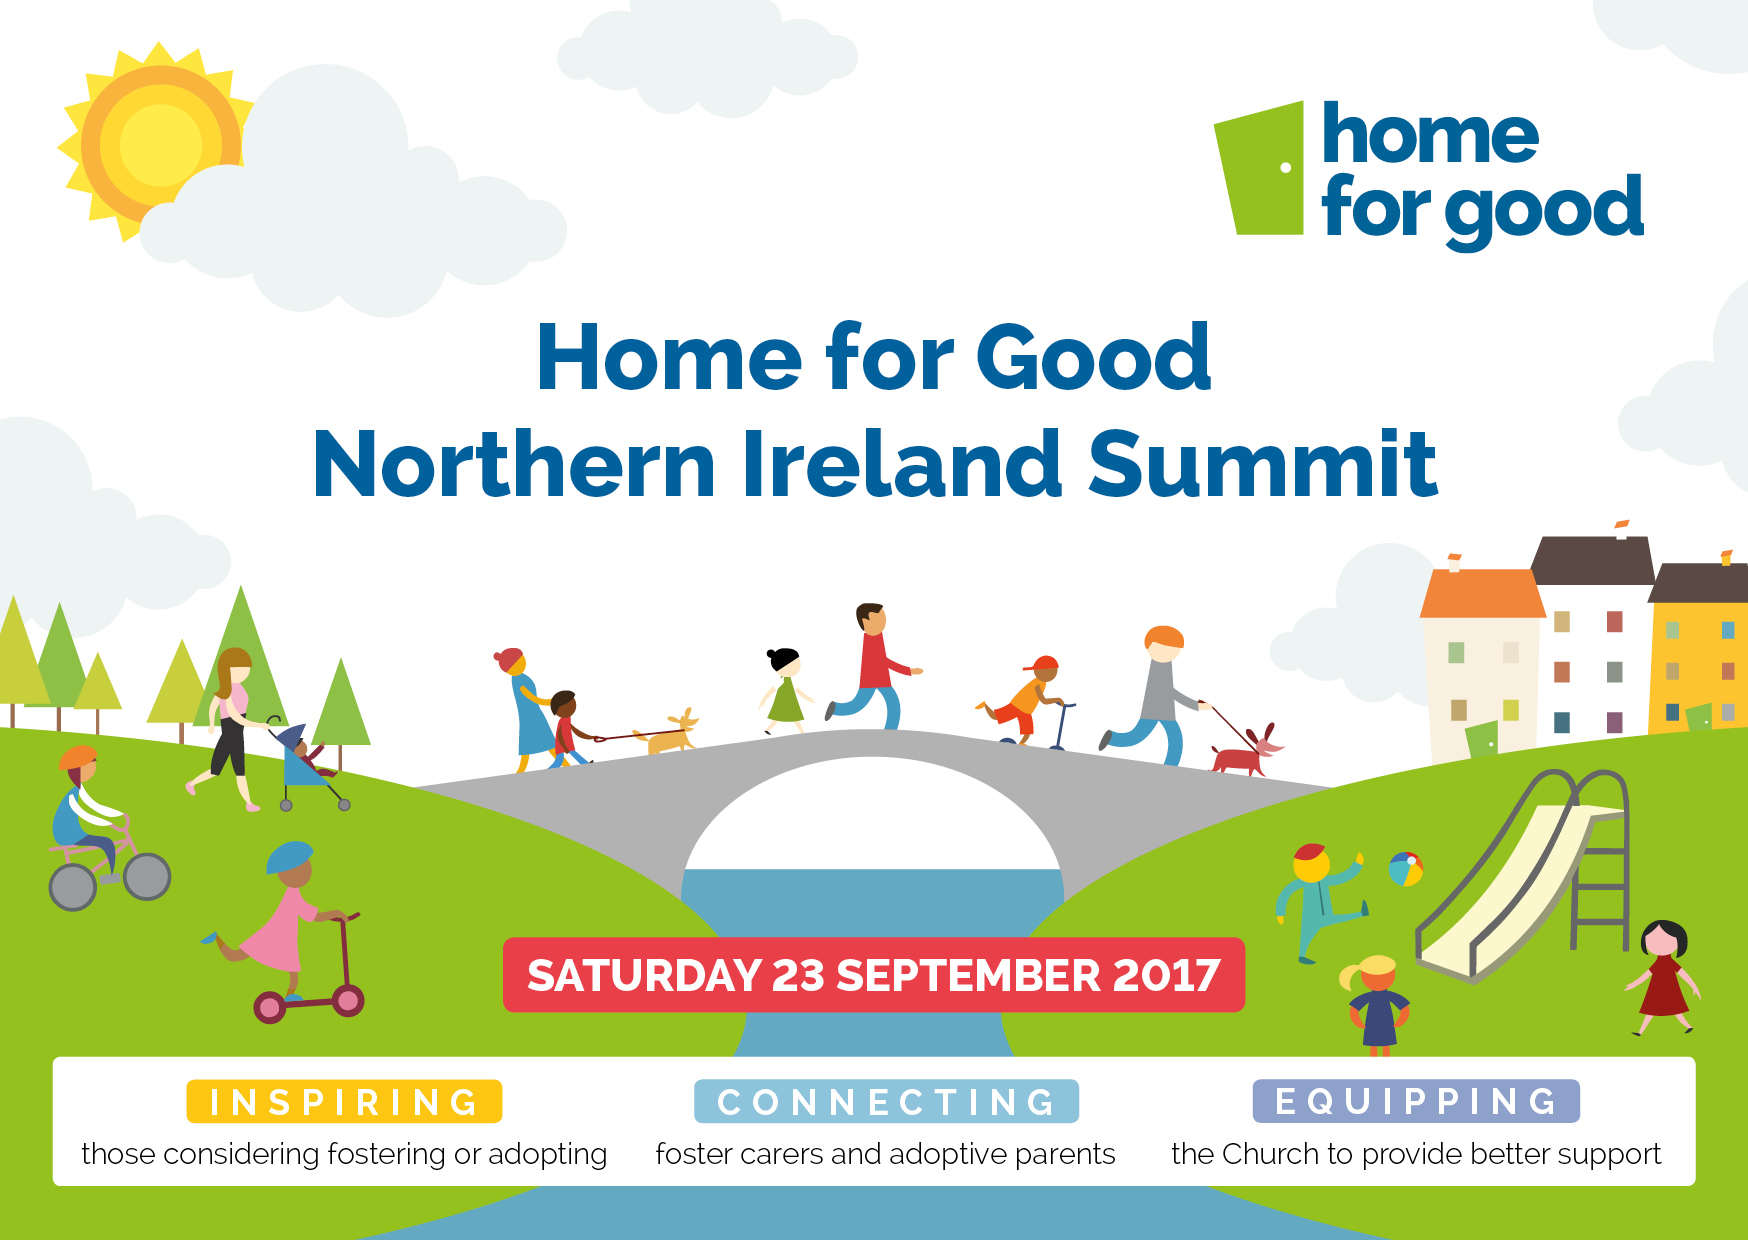 Northern Ireland summit image